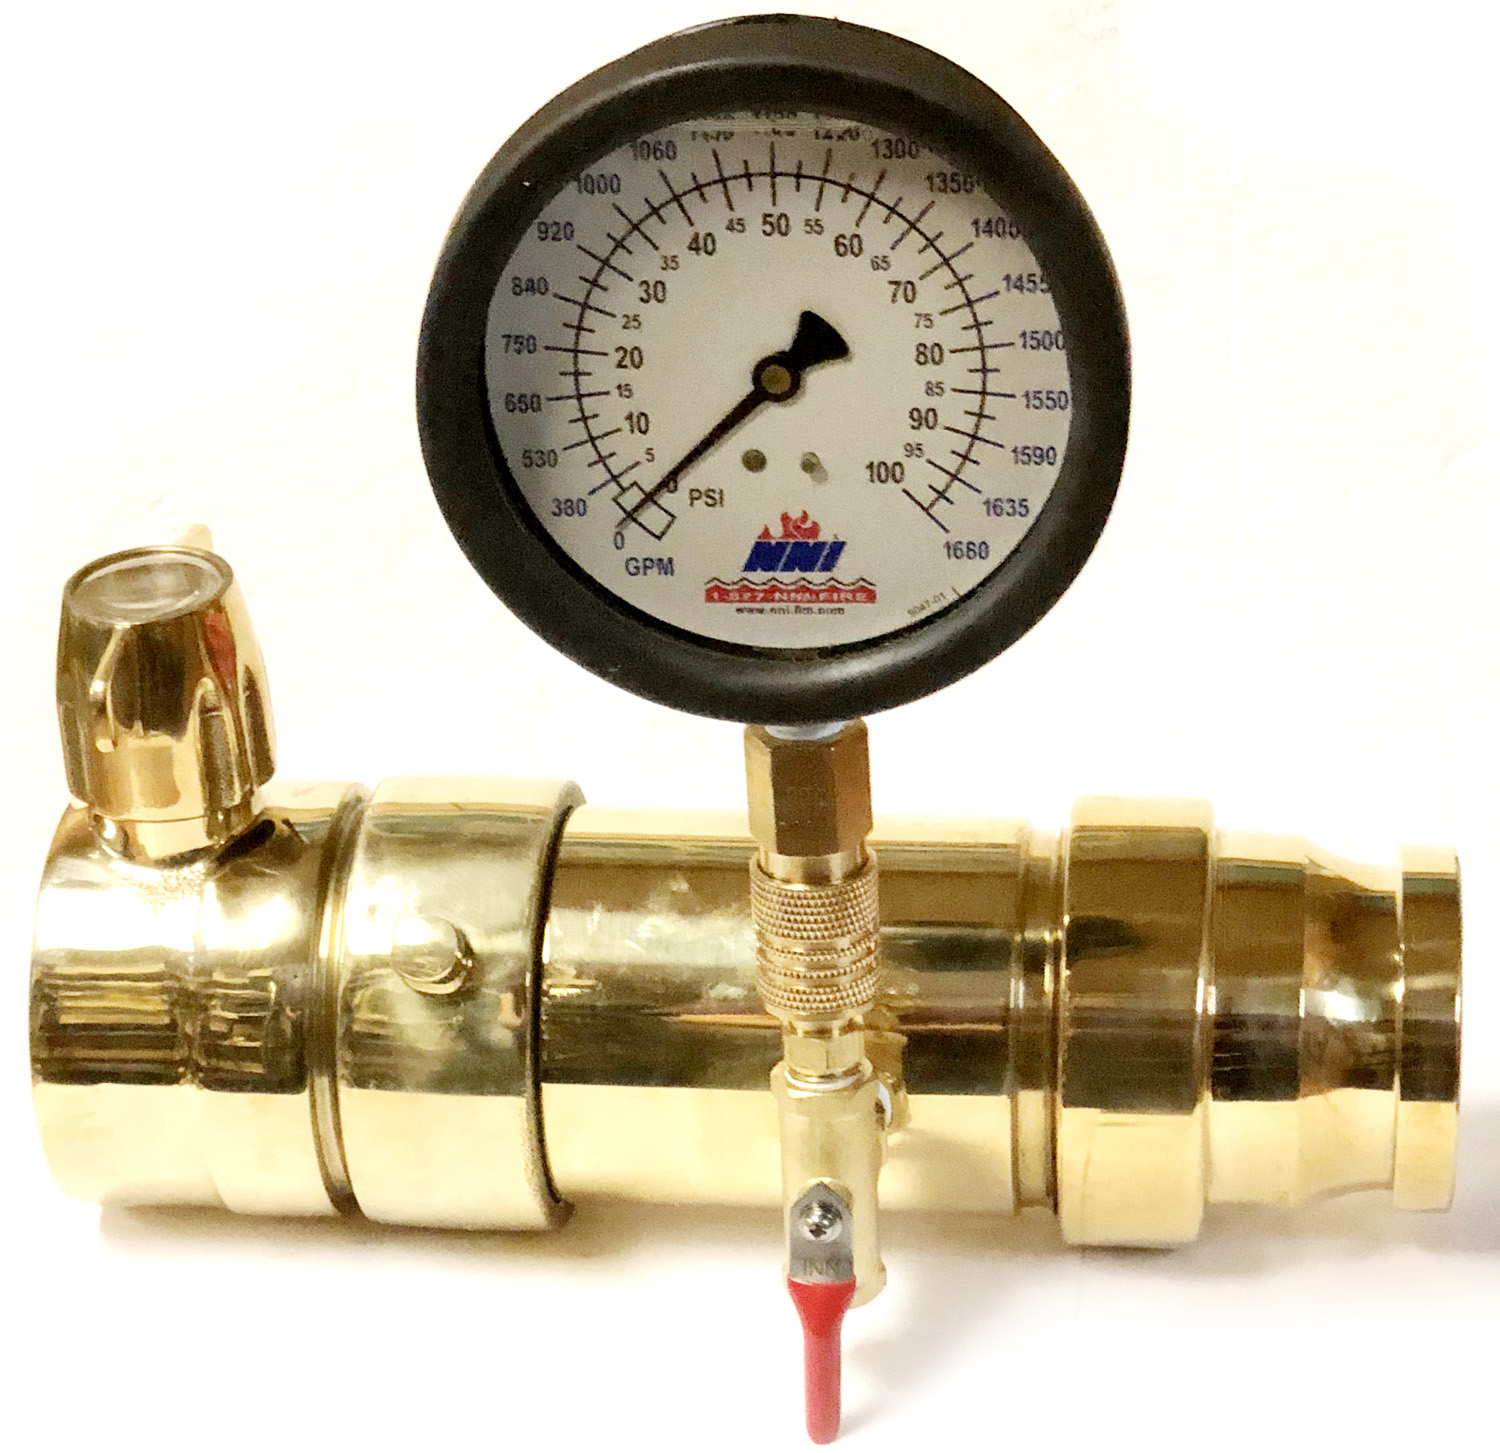 Nni fire hydrant flow testing swivel diffusers 060 for 60 psi1300gpm 100 for 100psi1680gpm 160 for 160psi2120gpm data sheet in line pitot flow gauge nvjuhfo Choice Image